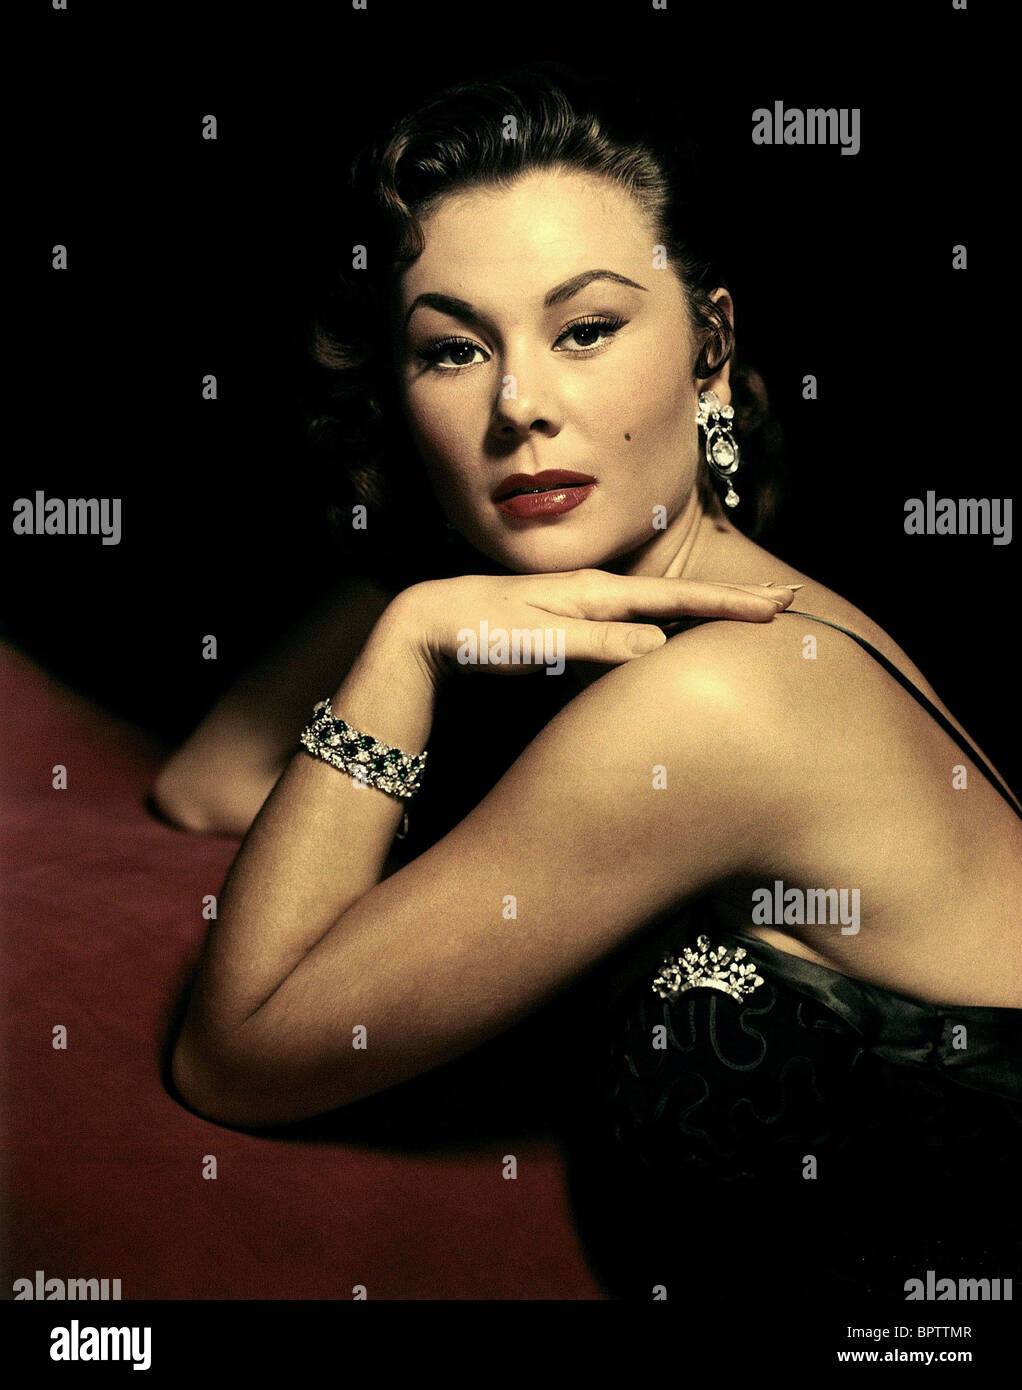 MITZI GAYNOR ACTRESS (1956) - Stock Image